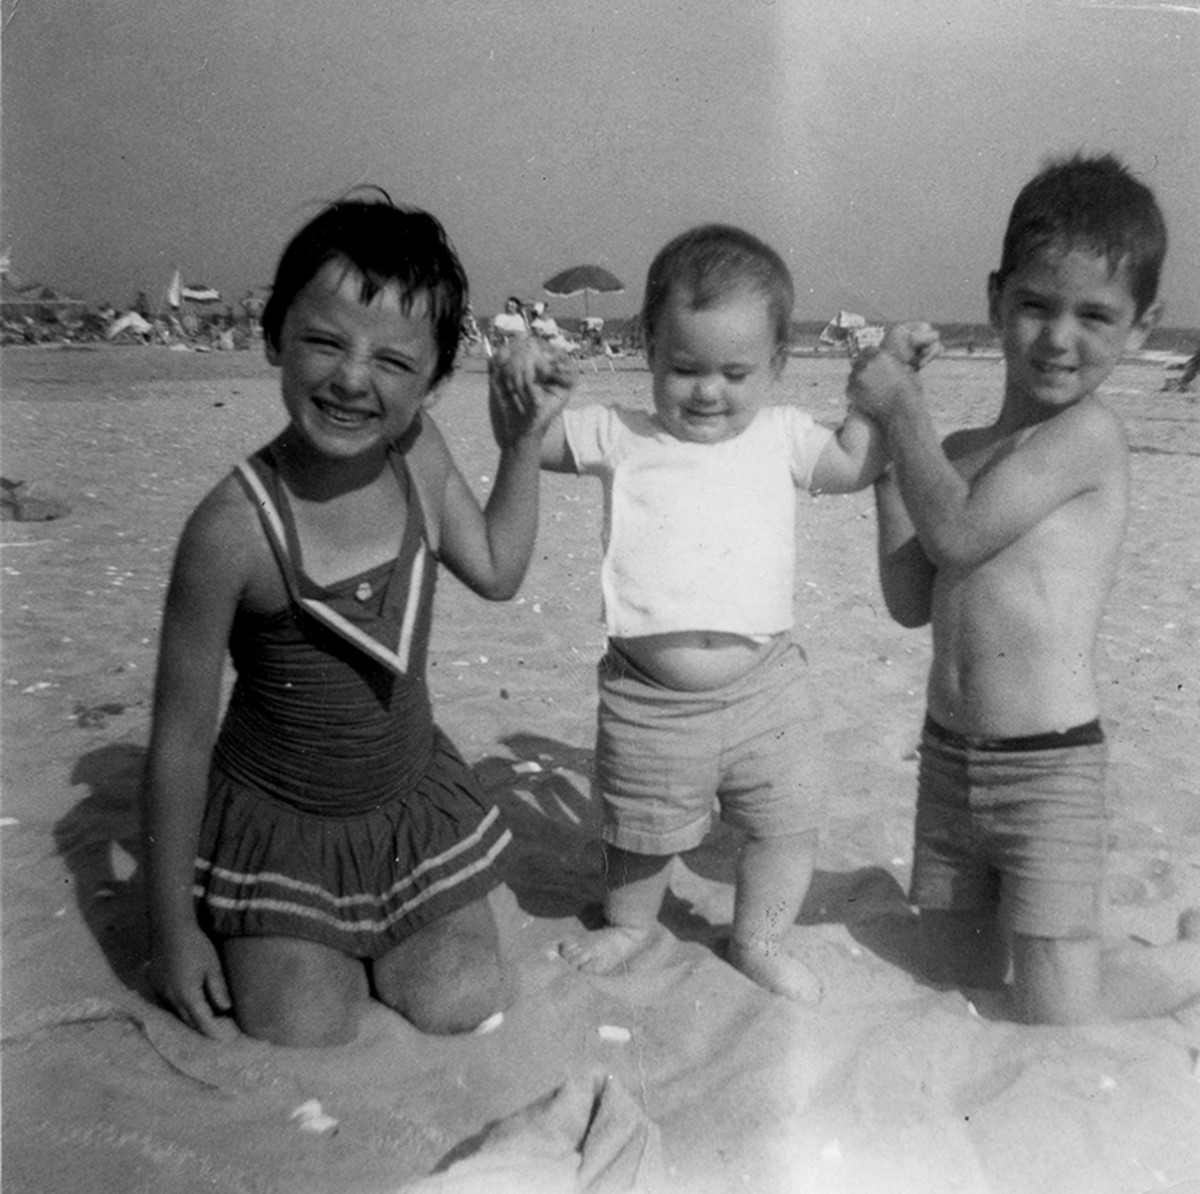 Conlon // Philadelphia & County Monaghan :: Conlon children on the beach, New Jersey